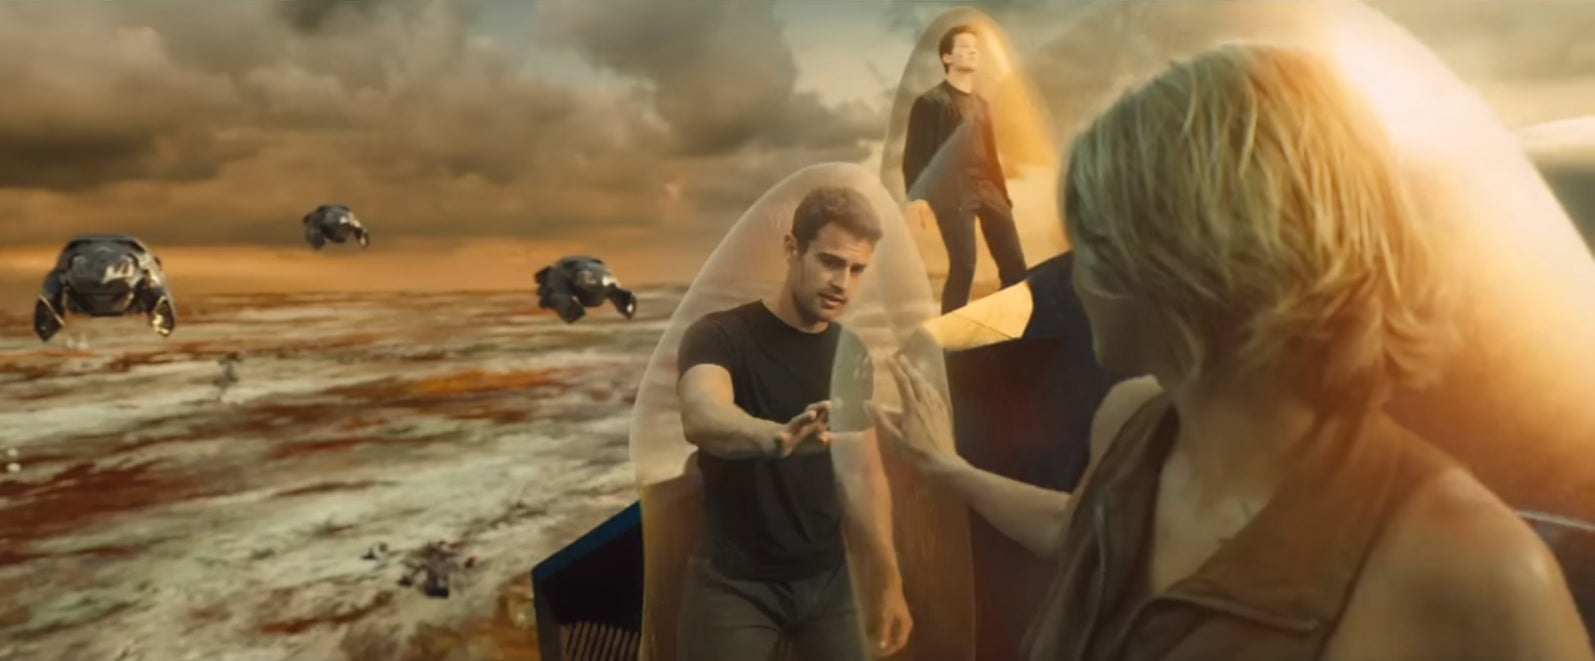 The Divergent Series Is the Ultimate Teen Dystopian Sugar Rush